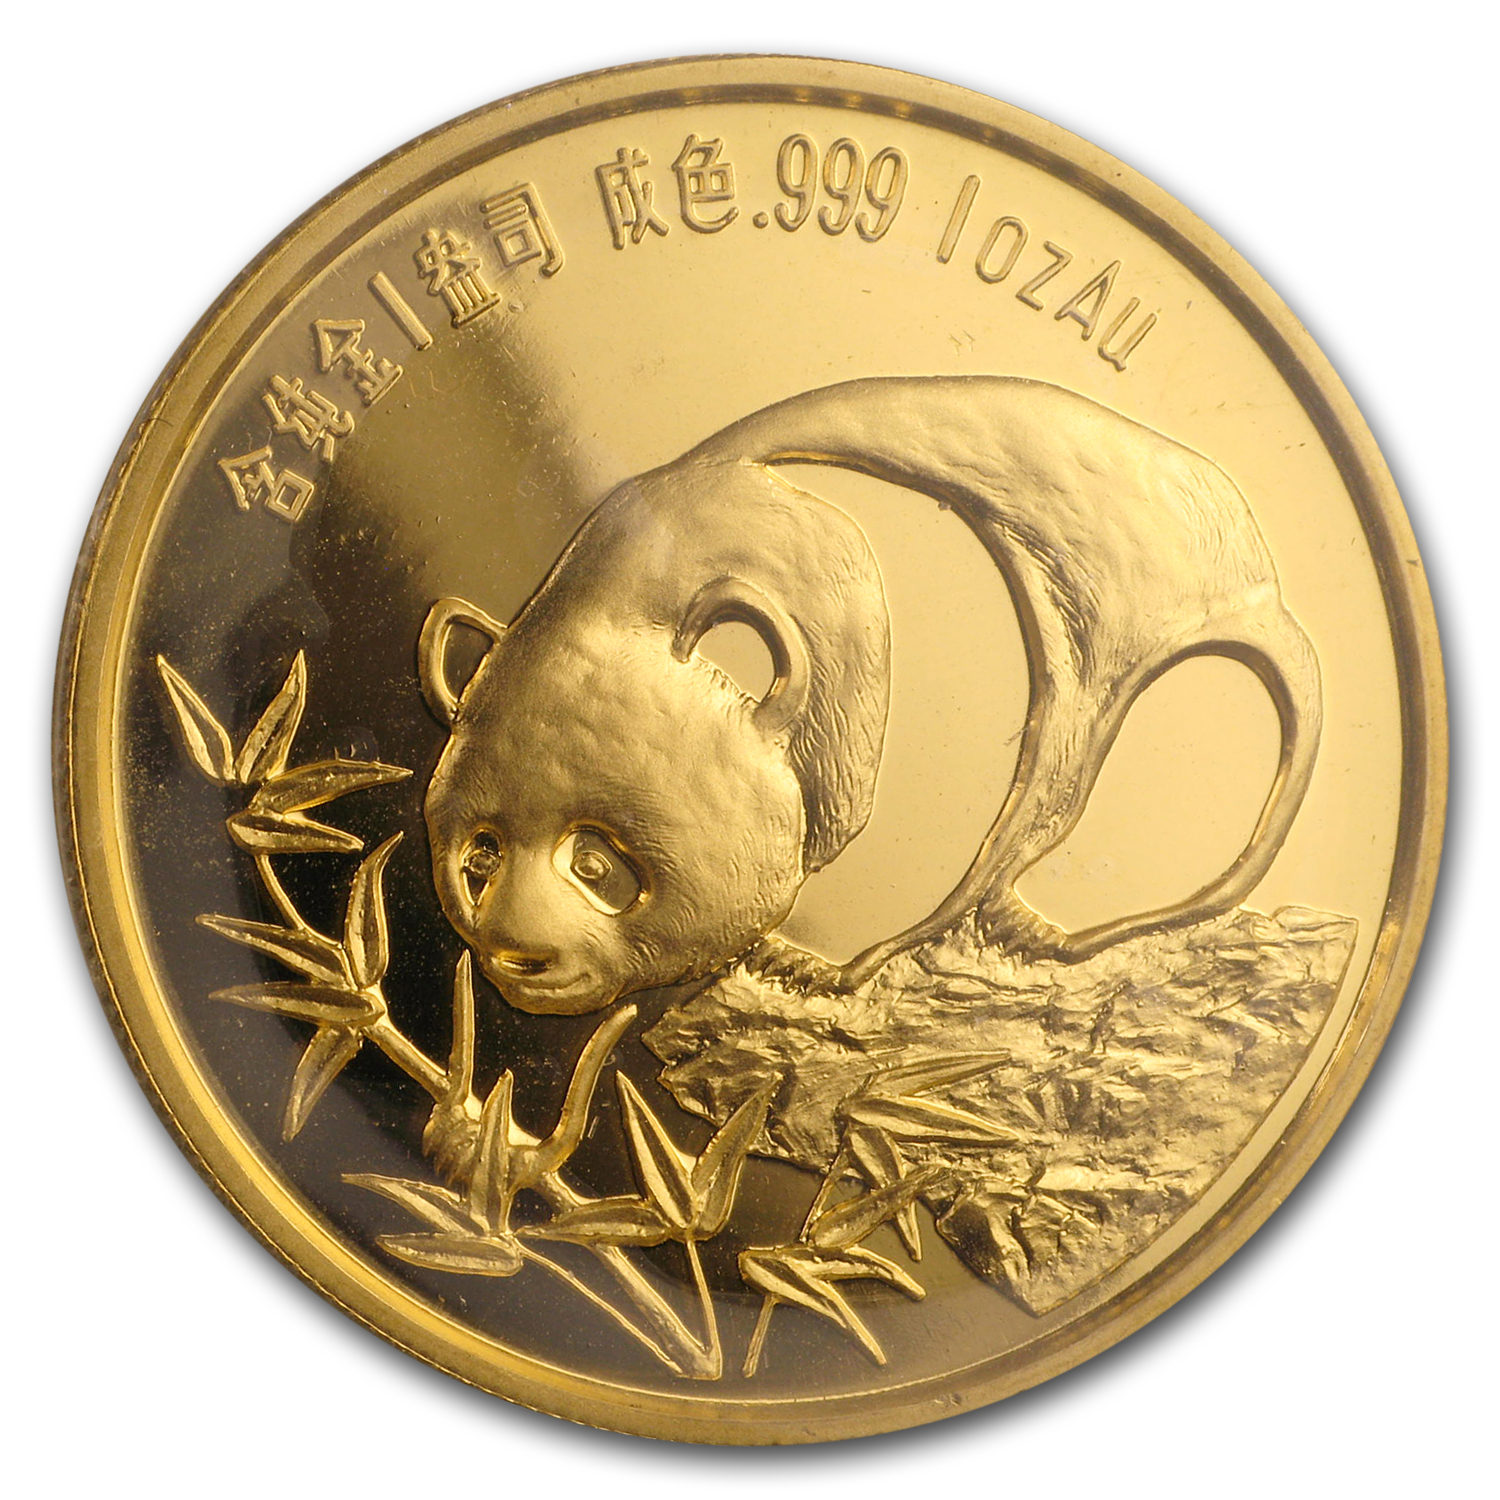 1987 1 oz Proof Gold Chinese Panda - New Orleans Sino Friendship